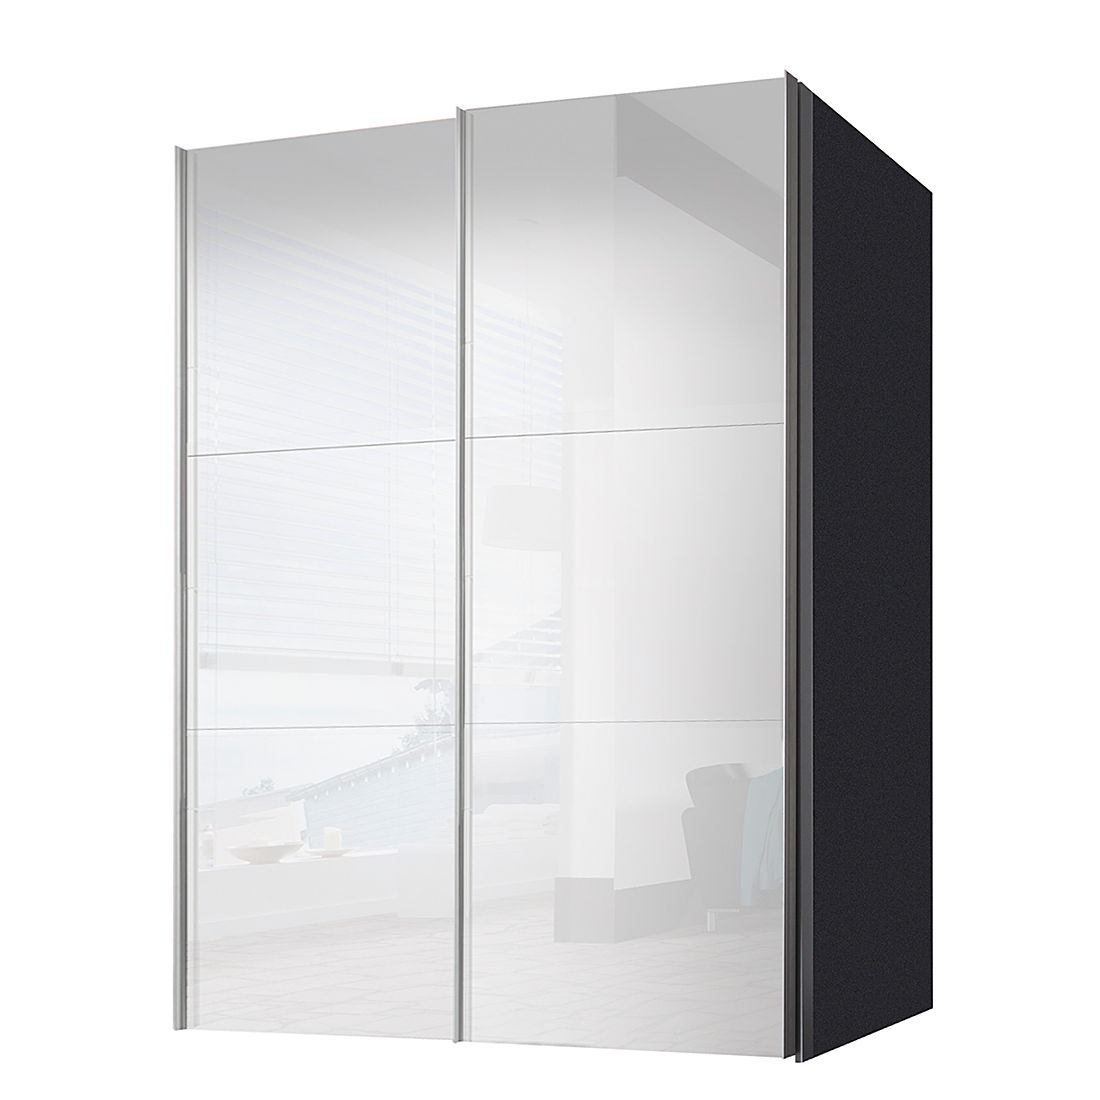 schwebet renschrank ruby graphit wei glas breite x h he 250 x 236 cm 2 t rig schrank. Black Bedroom Furniture Sets. Home Design Ideas